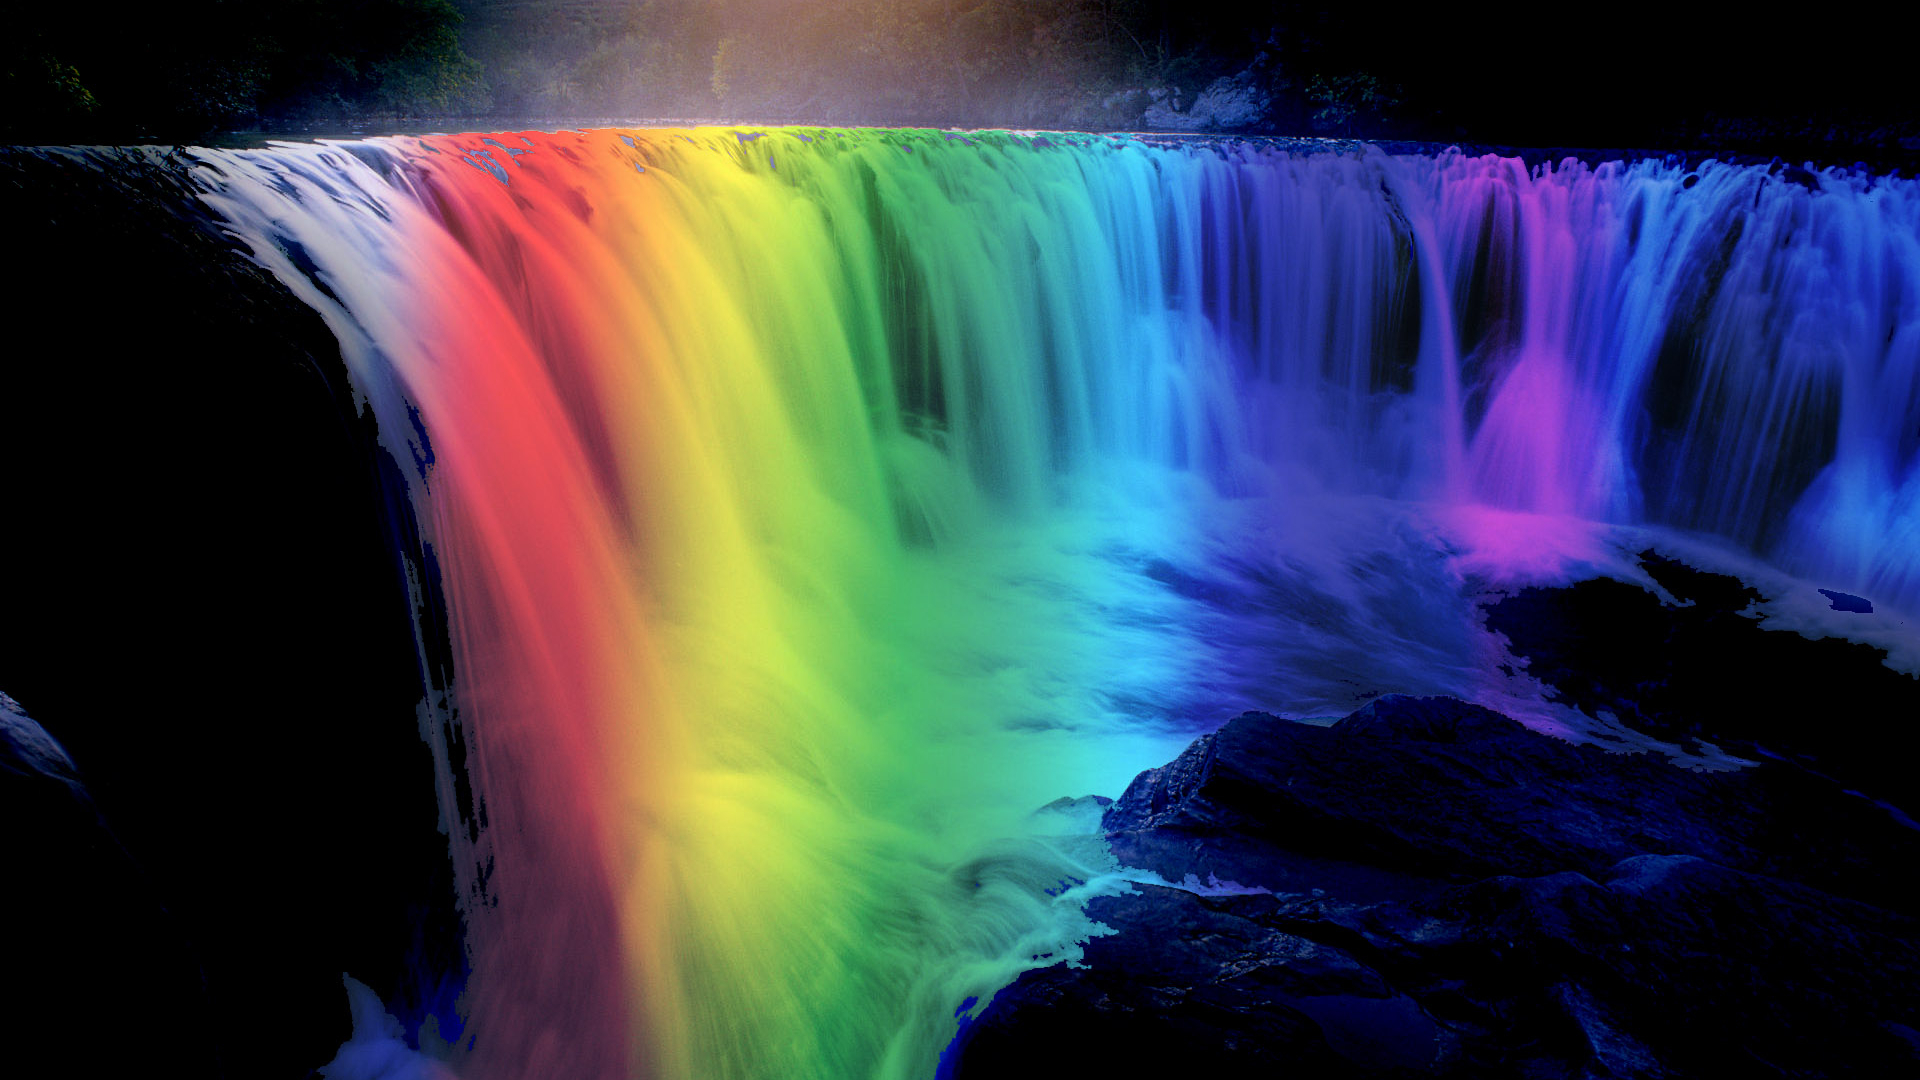 Free Download Rainbow Waterfall Iphone Wallpaper Only At Wallpaper 4 Me For 1920x1200 For Your Desktop Mobile Tablet Explore 45 Desktop Wallpapers Waterfalls With Rainbow Waterfall Wallpaper Moving Waterfall